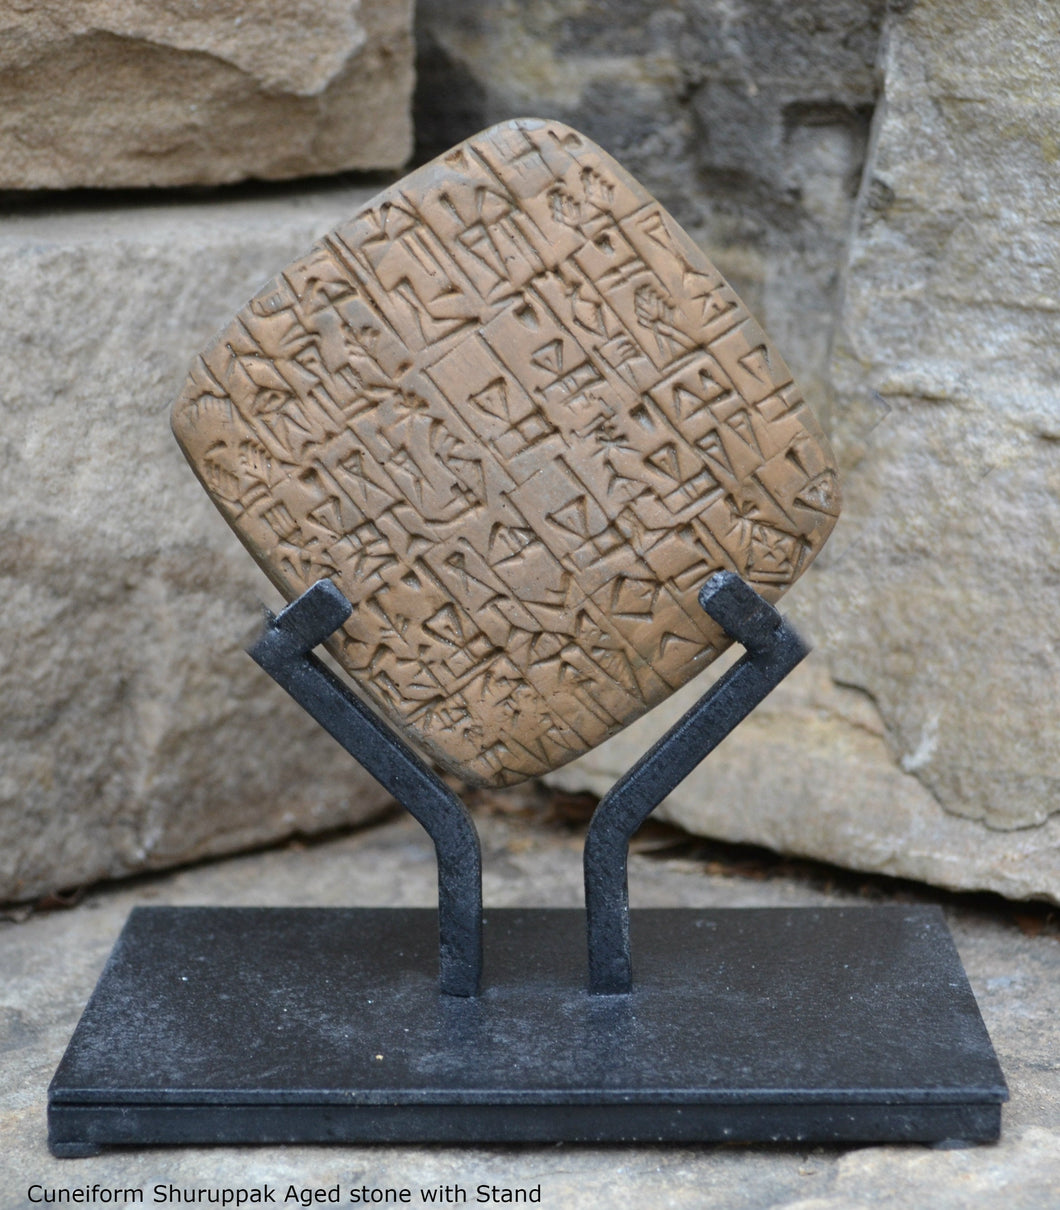 Cuneiform Bill sale of a male slave and a building in Shuruppak, Sumerian tablet museum replica tablet Sculpture www.Neo-Mfg.com with stand